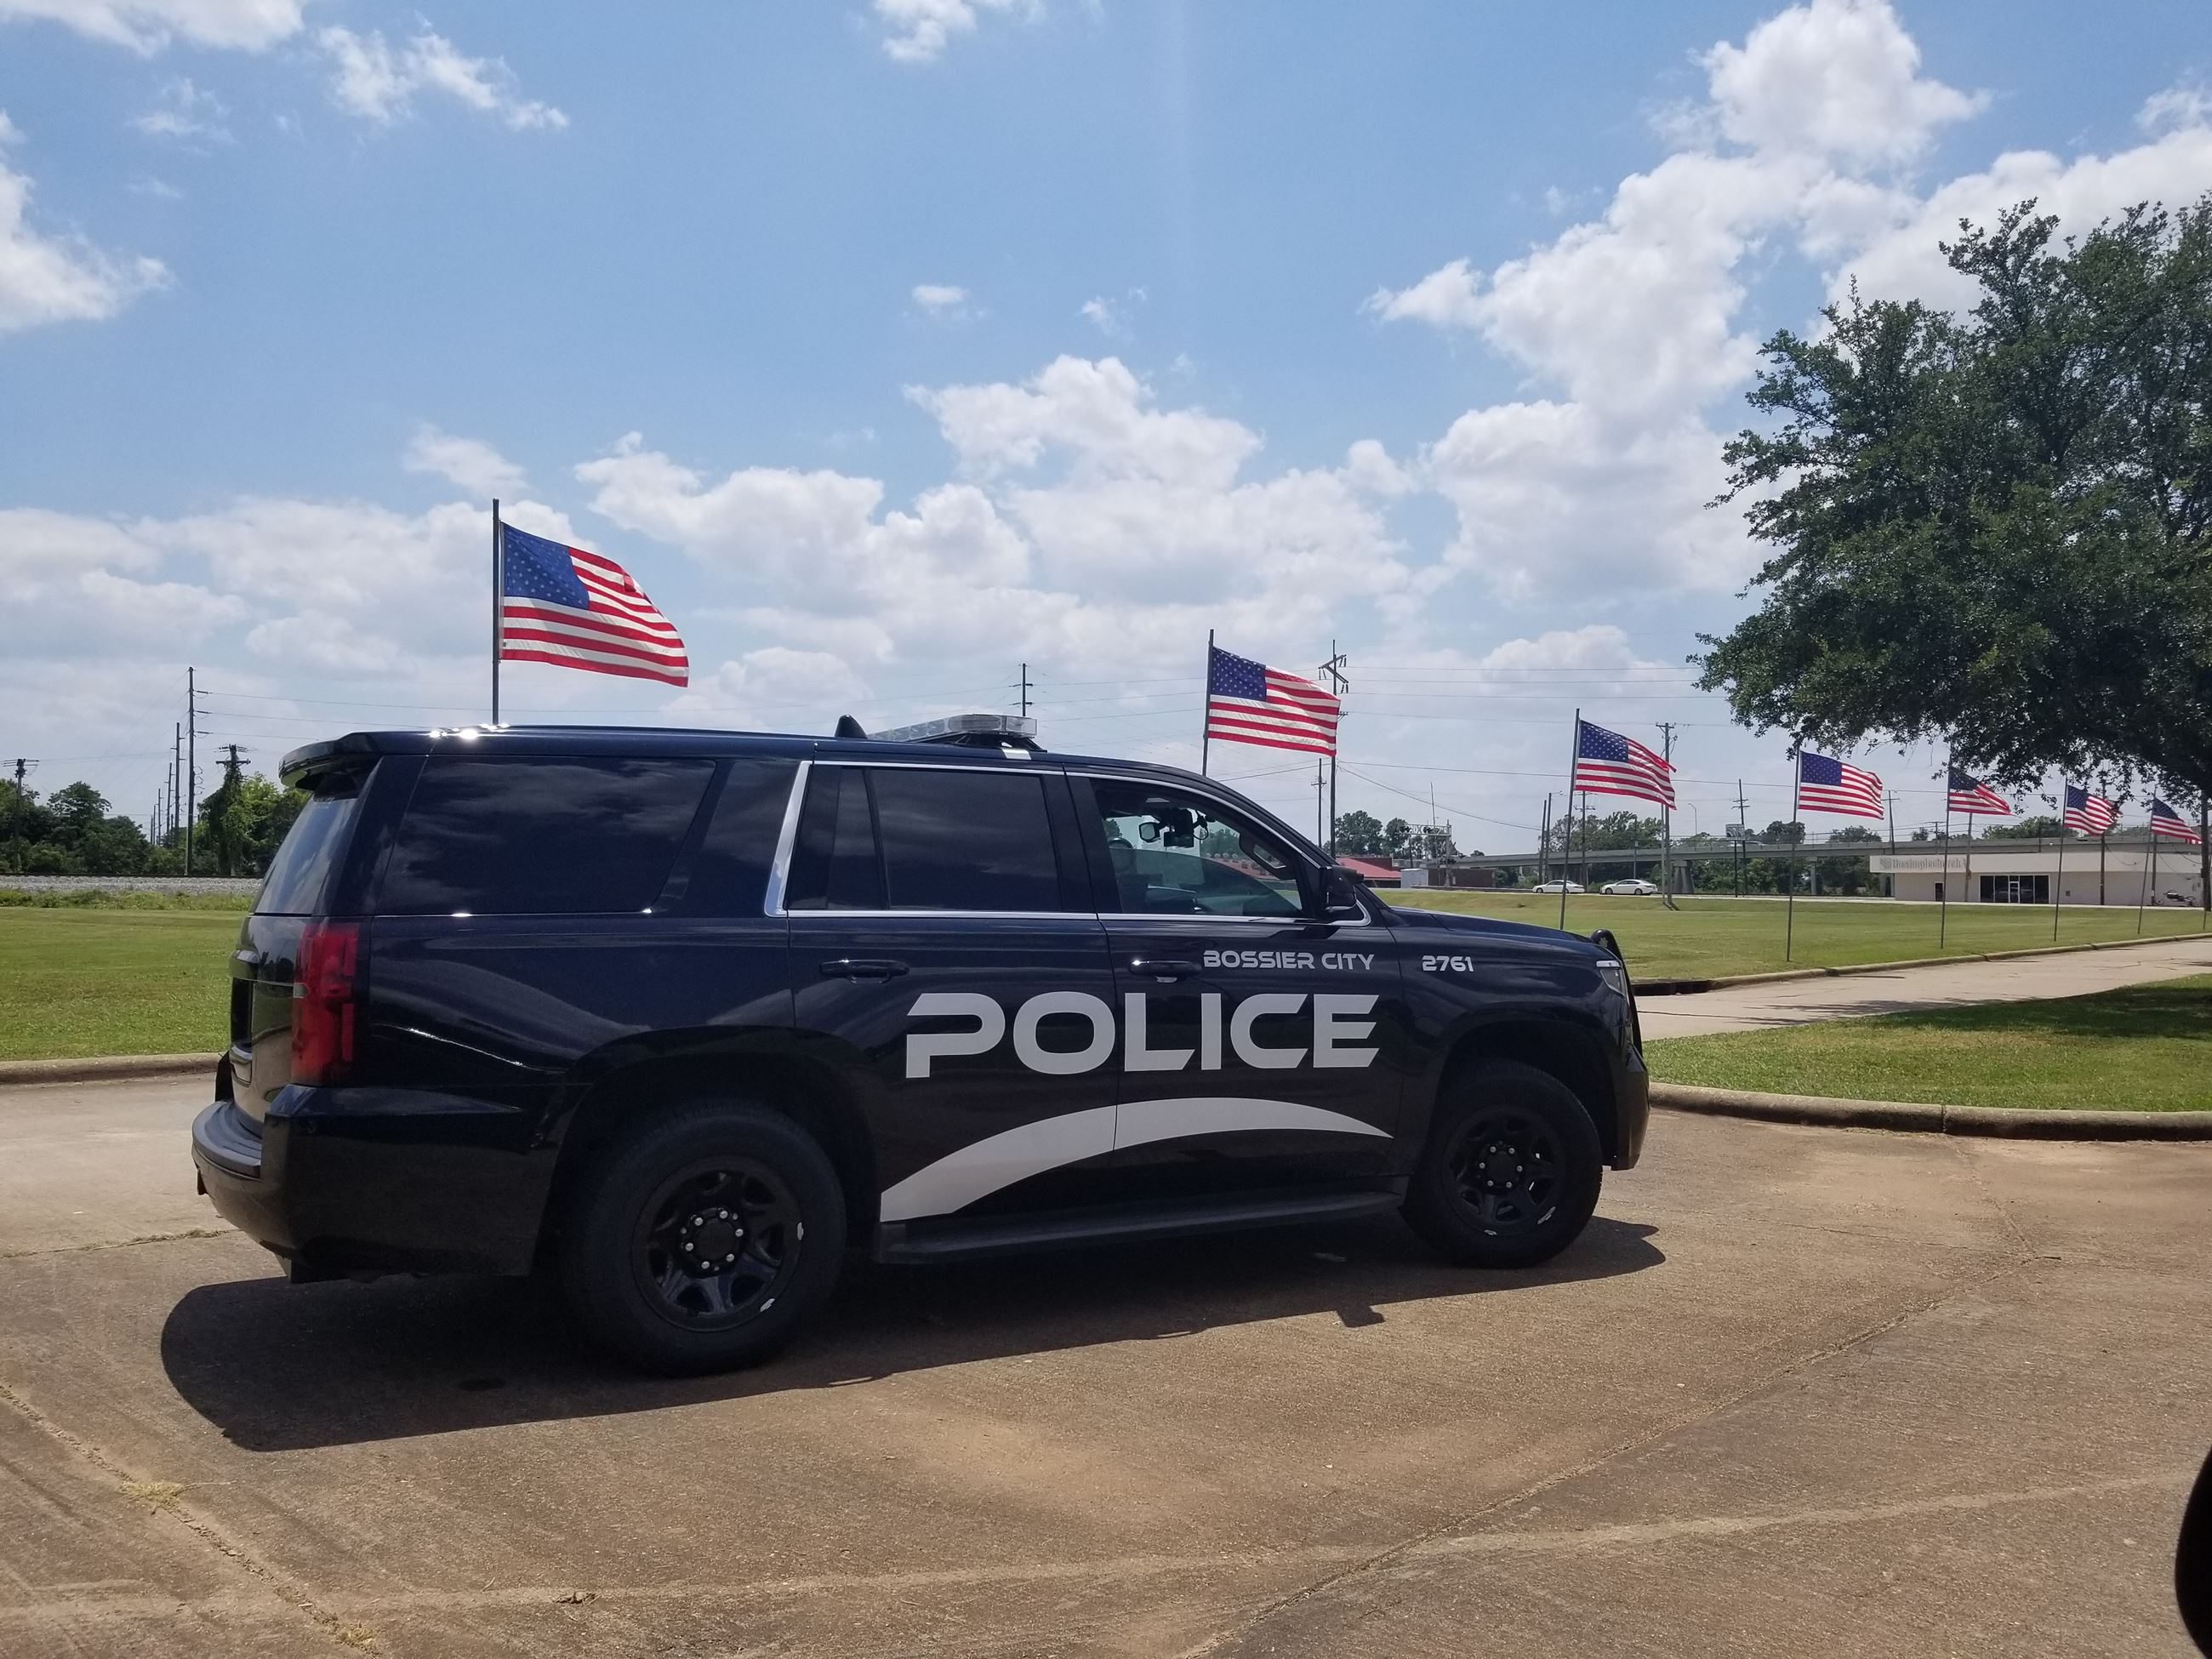 Bossier City Police Vehicle